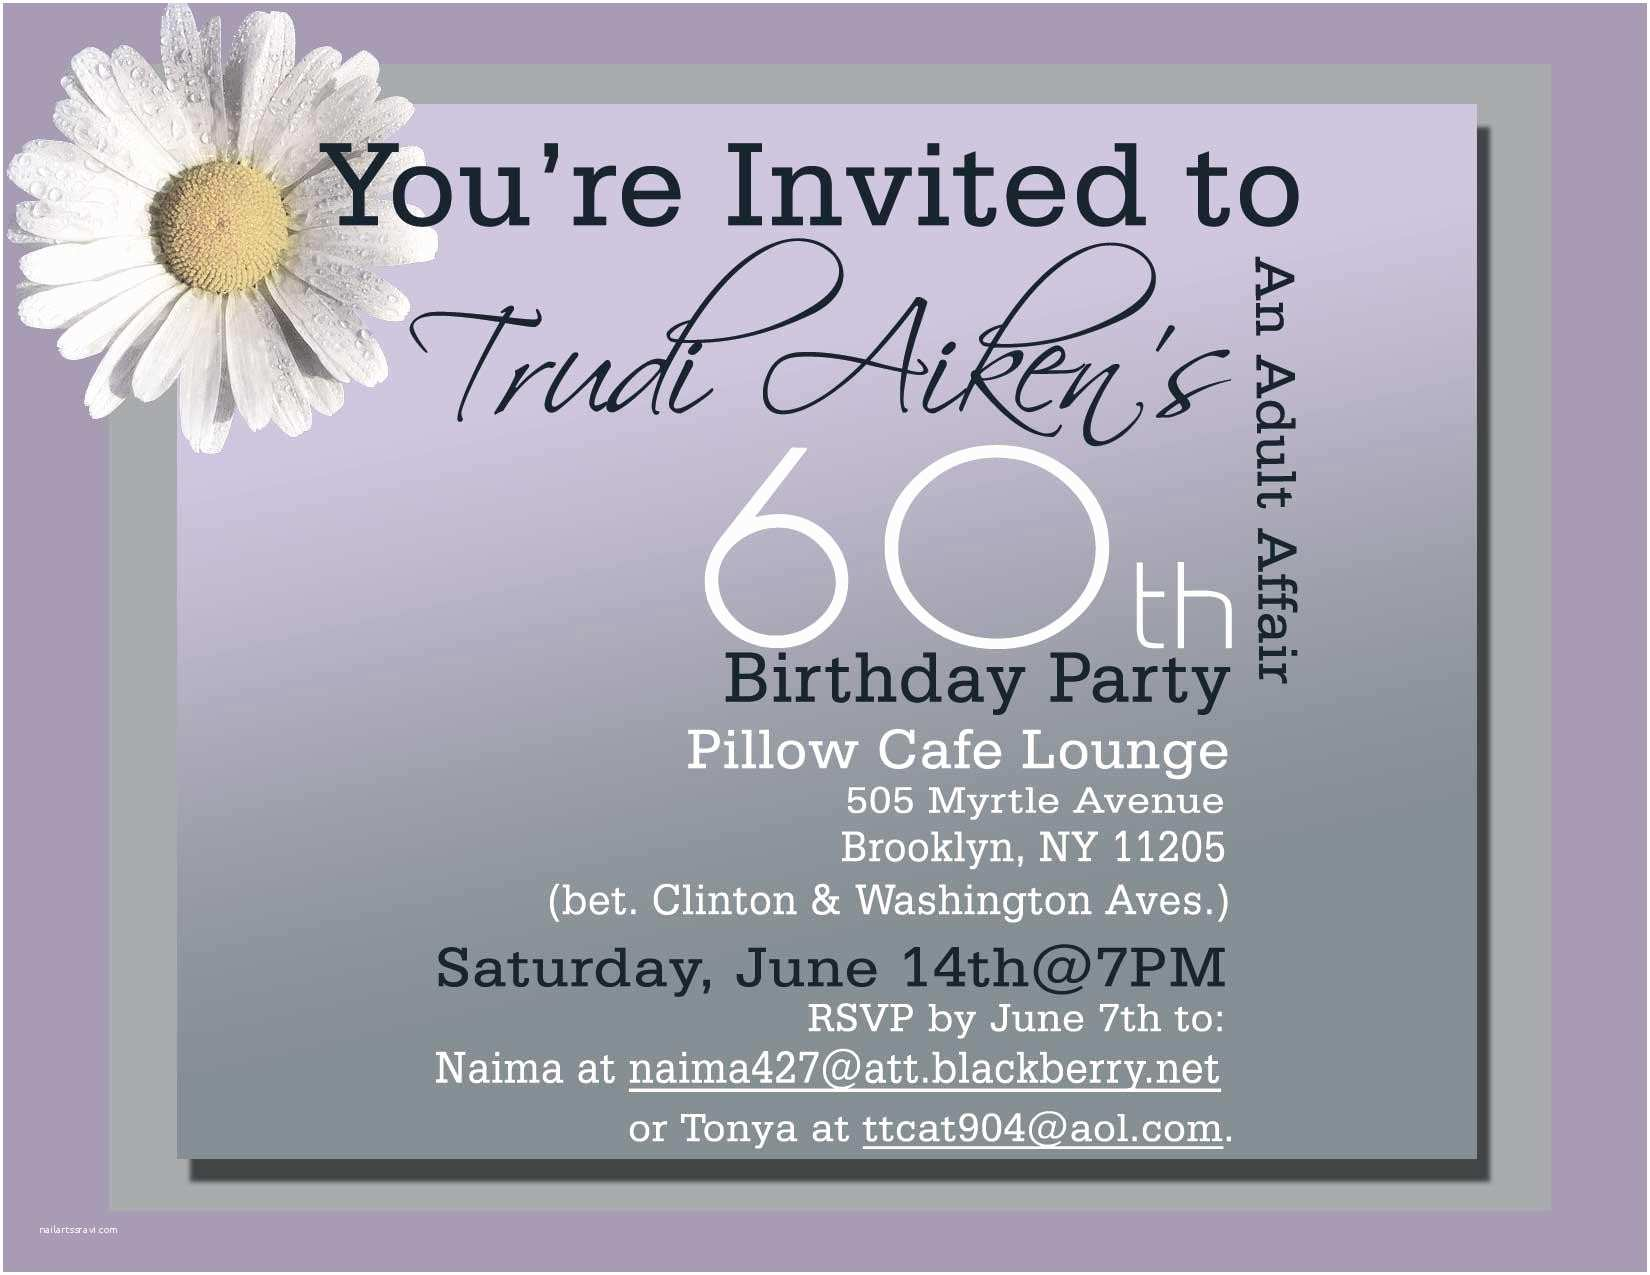 Birthday Party Invitation Sample 60th Surprise Birthday Party Invitations